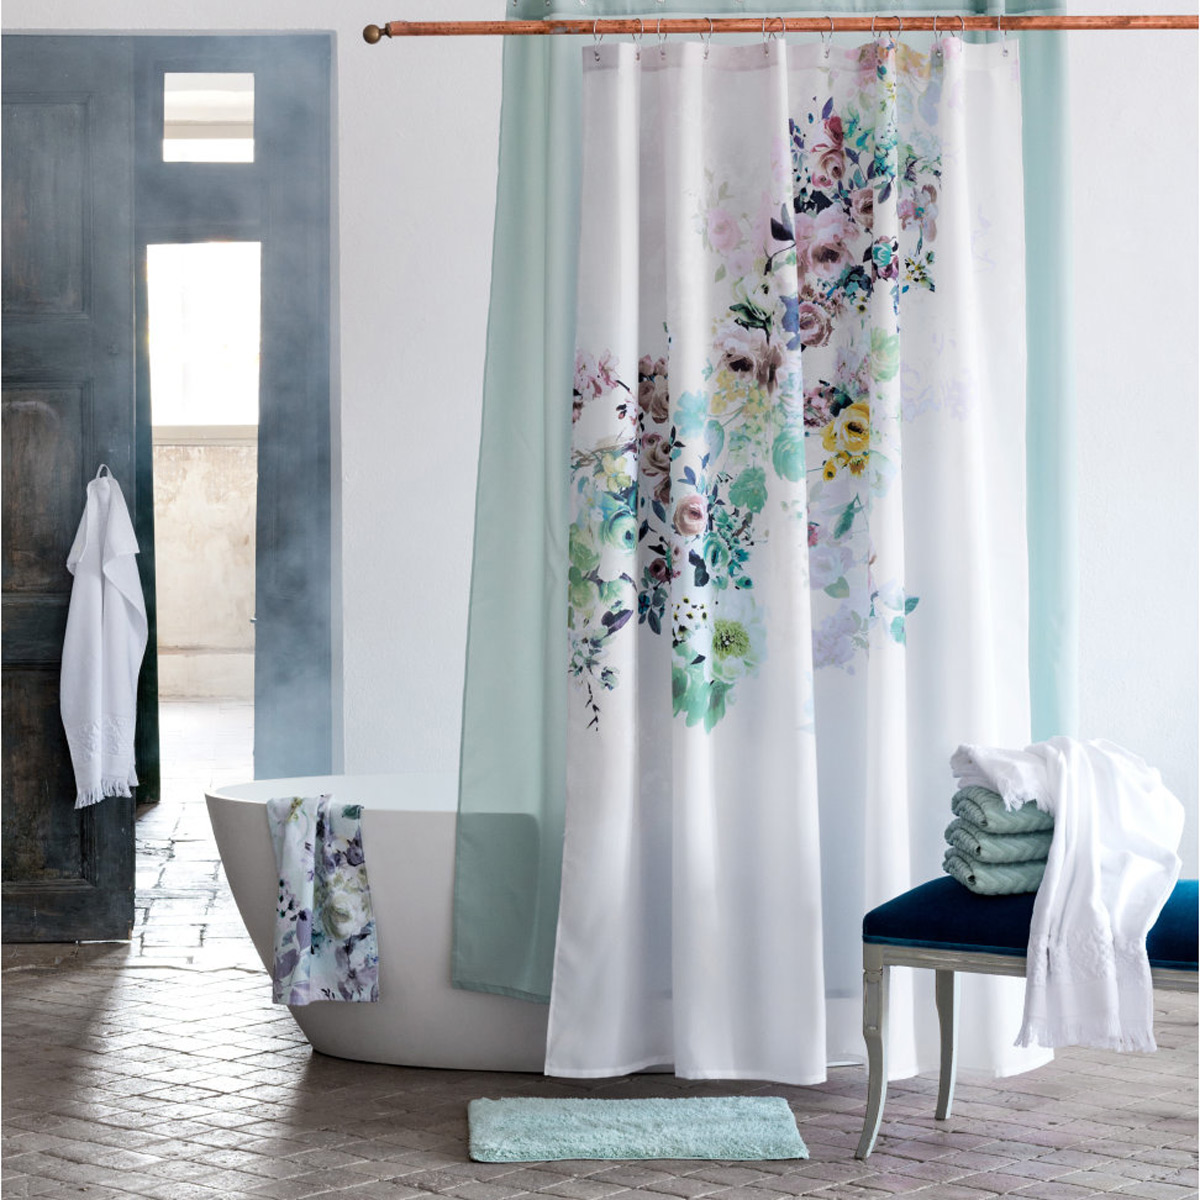 10 amazing shower rooms dream home inspiration good How often should you change your shower curtain